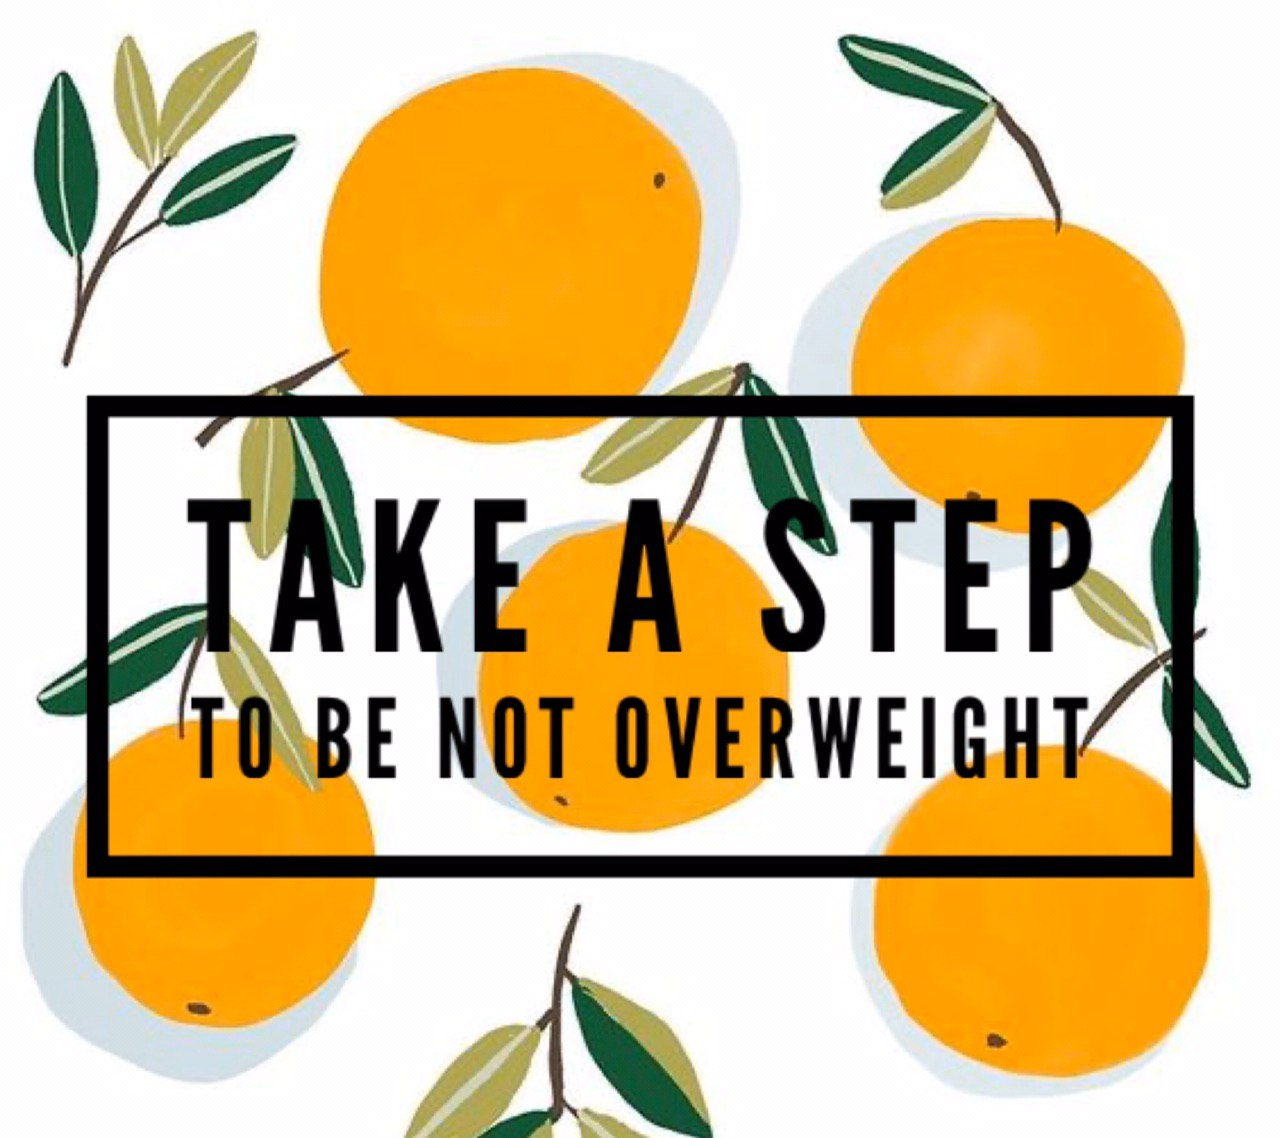 Take a step to be not overweight